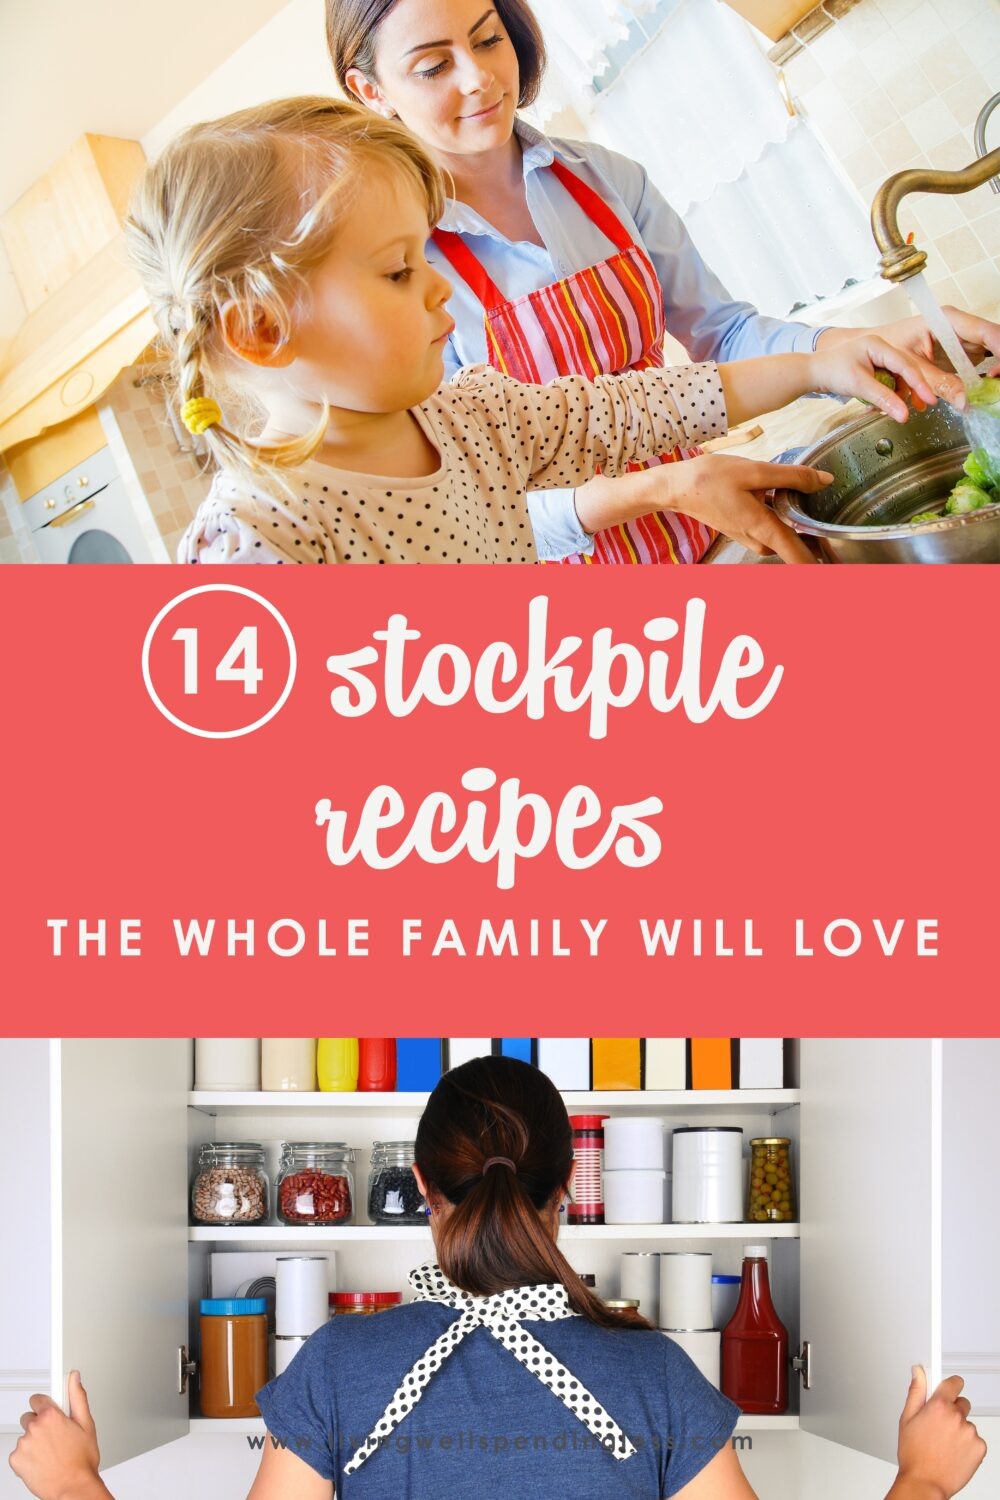 These stockpile recipes will keep your family fed and come together quickly with ingredients you probably already have on hand! #foodmadesimple #stockpilerecipes #familyrecipes #recipes #prepping #preppers #foodprepping